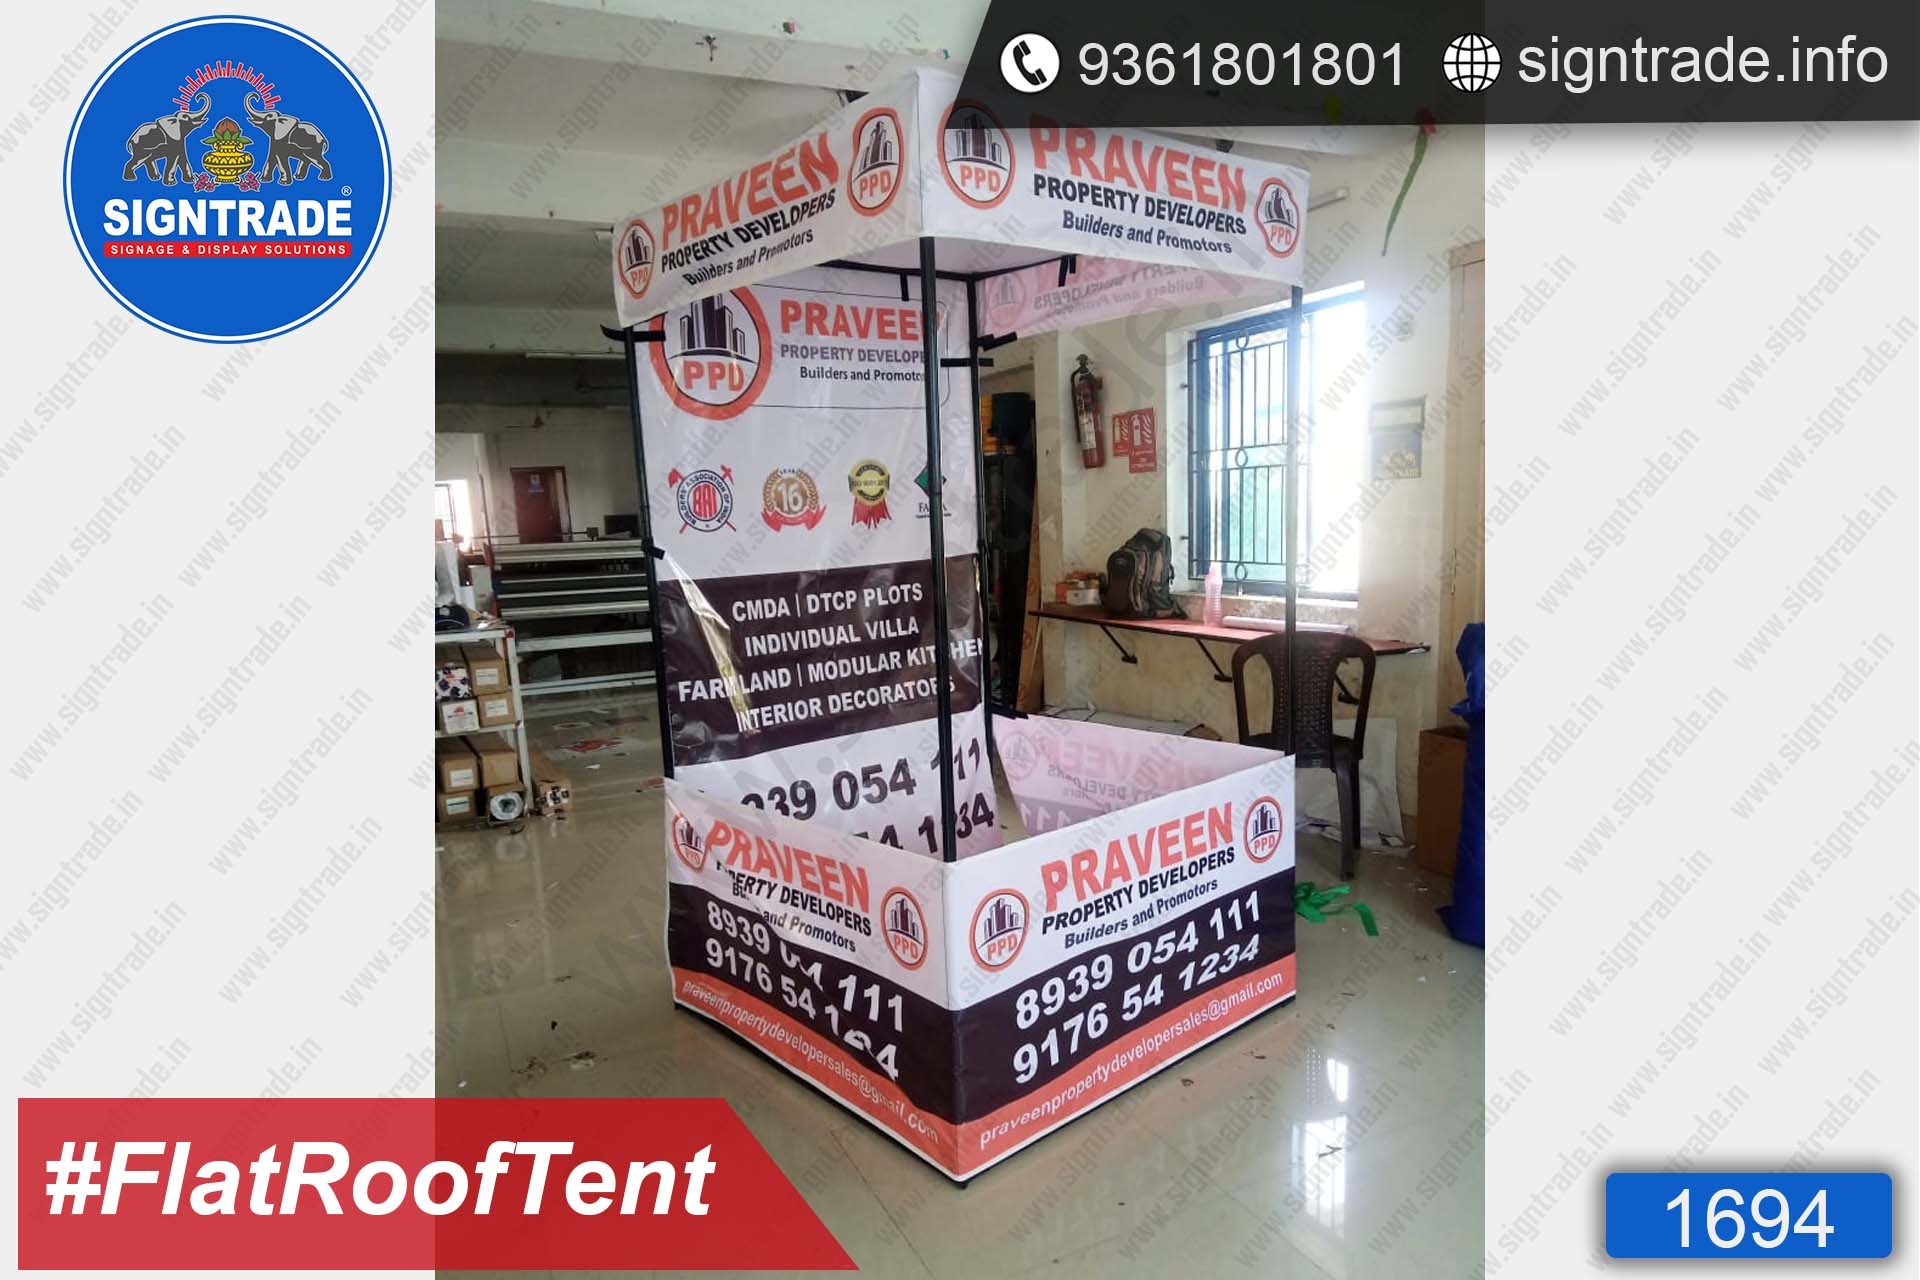 Praveen Property Developers - Canopy Tent - SIGNTRADE - Promotional Canopy Tent Manufacturers in Chennai